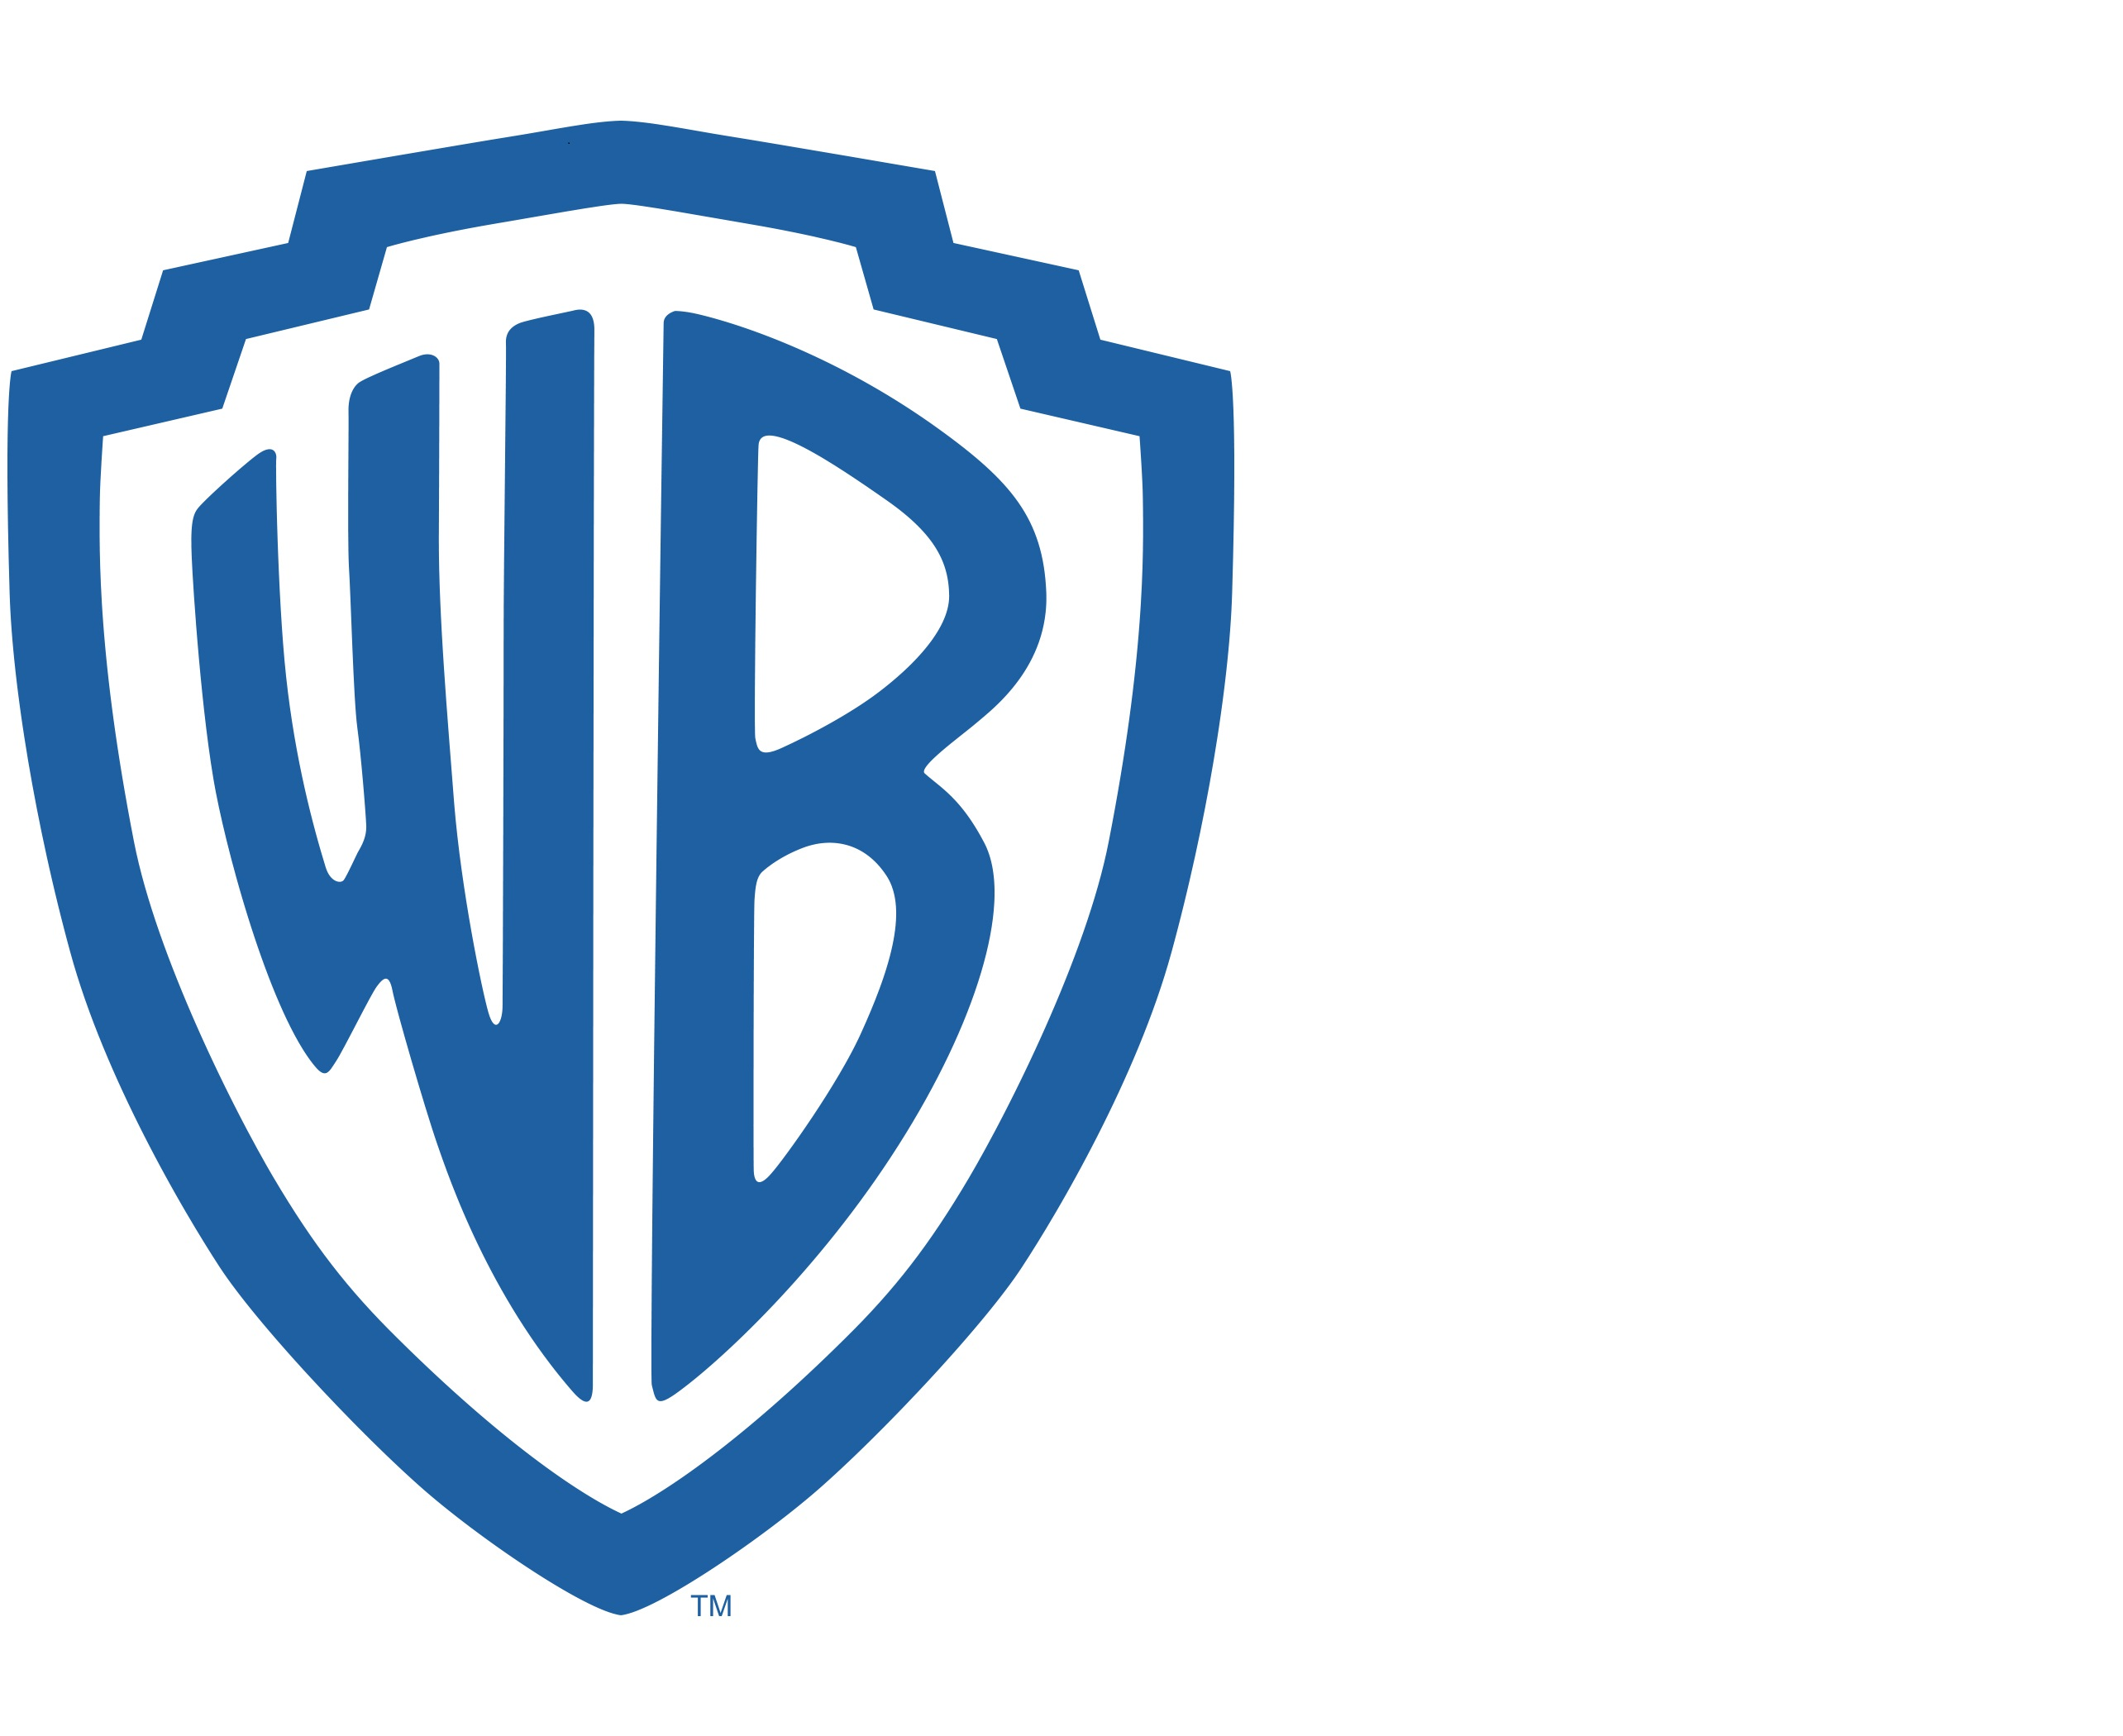 Warner Bros. ITVP Production Deutschland GmbH